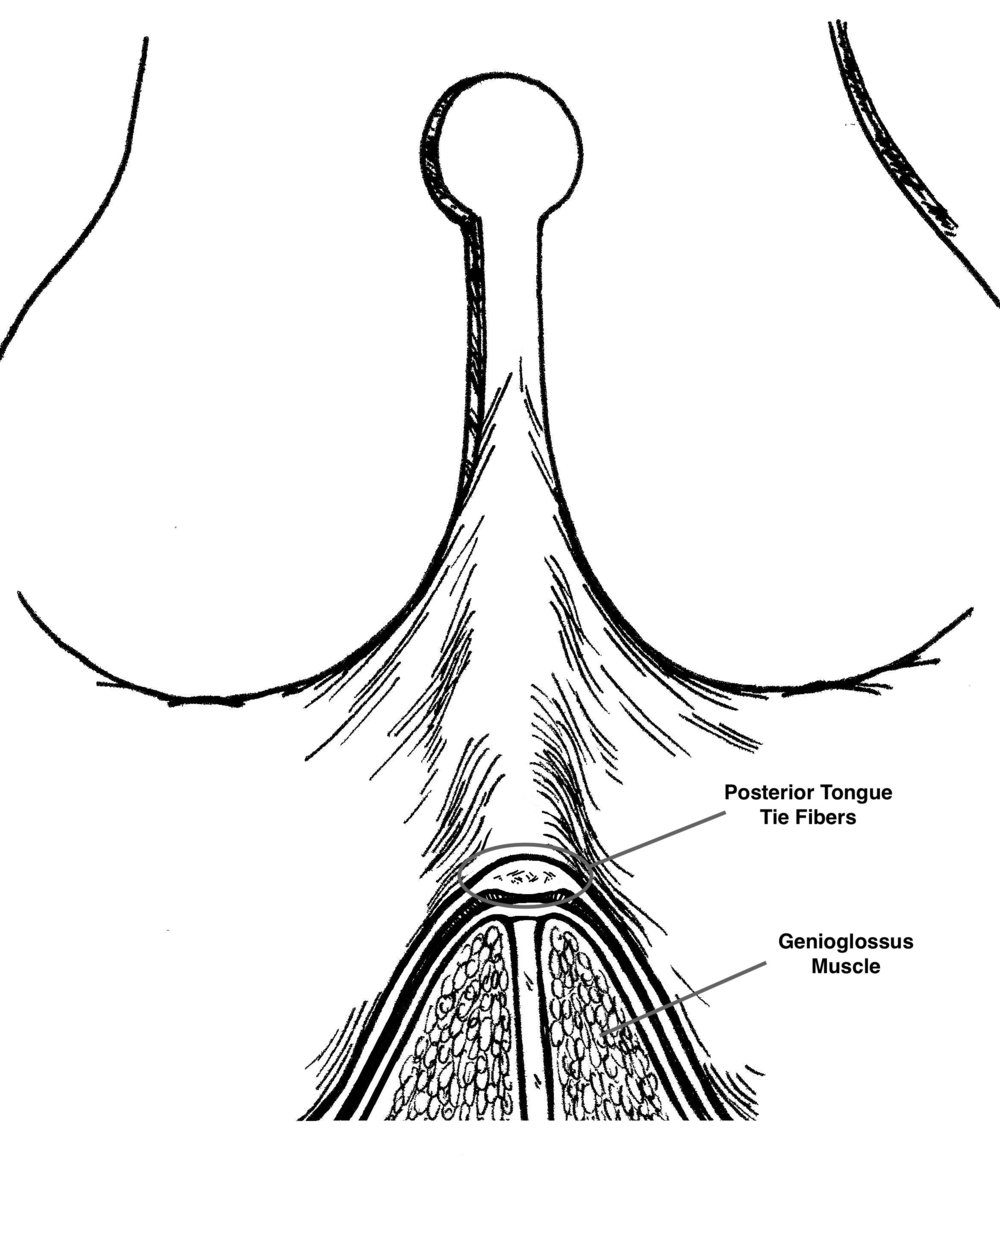 PTT fibers are centrally located in a layer above the genioglossus muscle